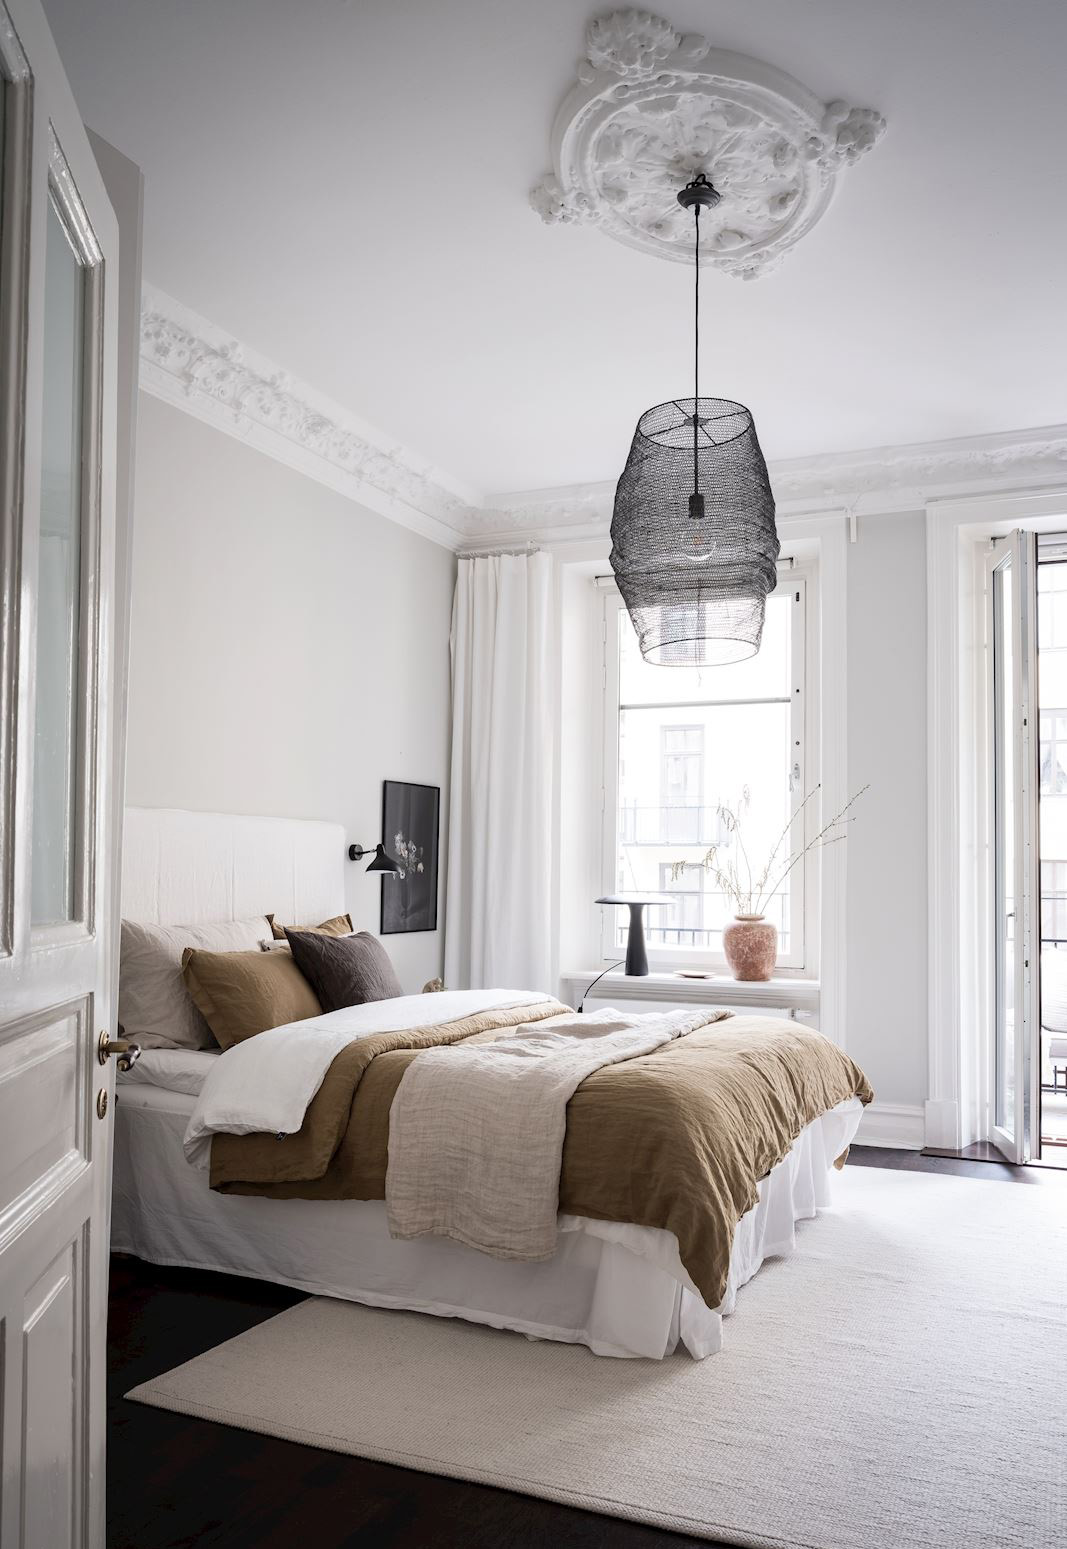 Minimalist white bedroom in a period apartment, with black pendant light and accessories in earthy neutrals   How to design a lighting scheme that works for you   These Four Walls blog